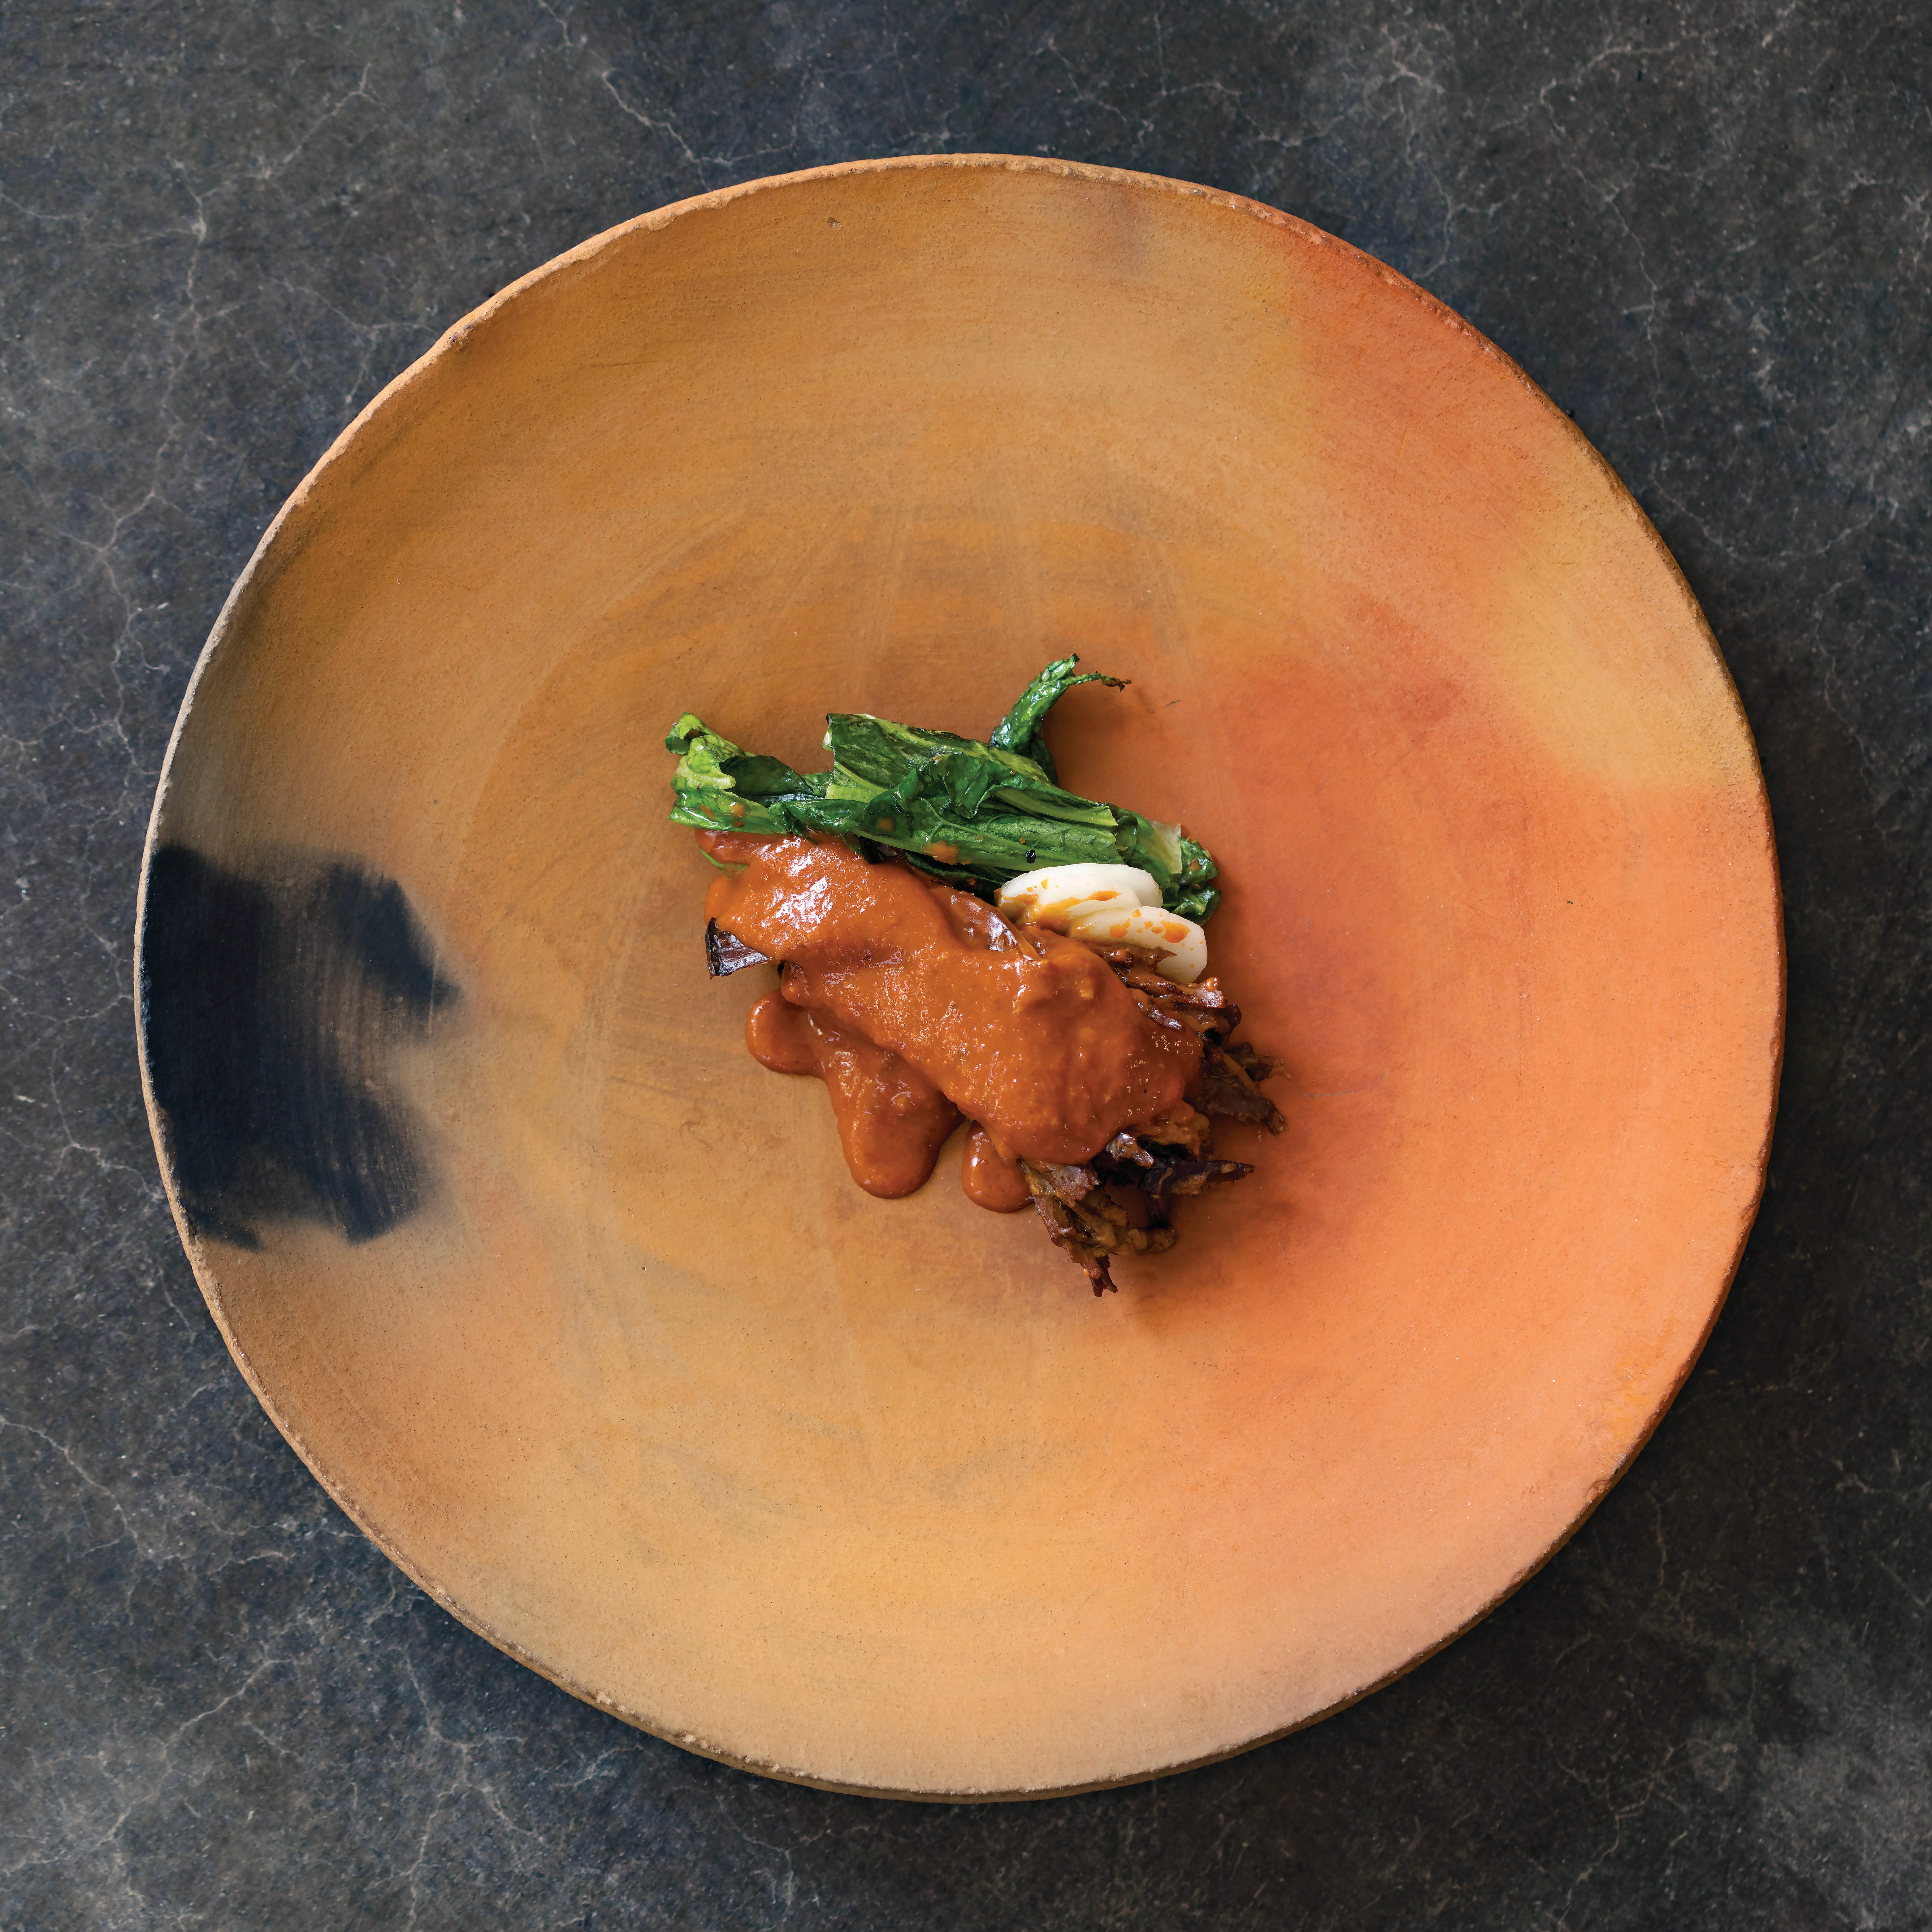 smooth orange plate with smoke smudge with artistically designed saucy beef dish in the center